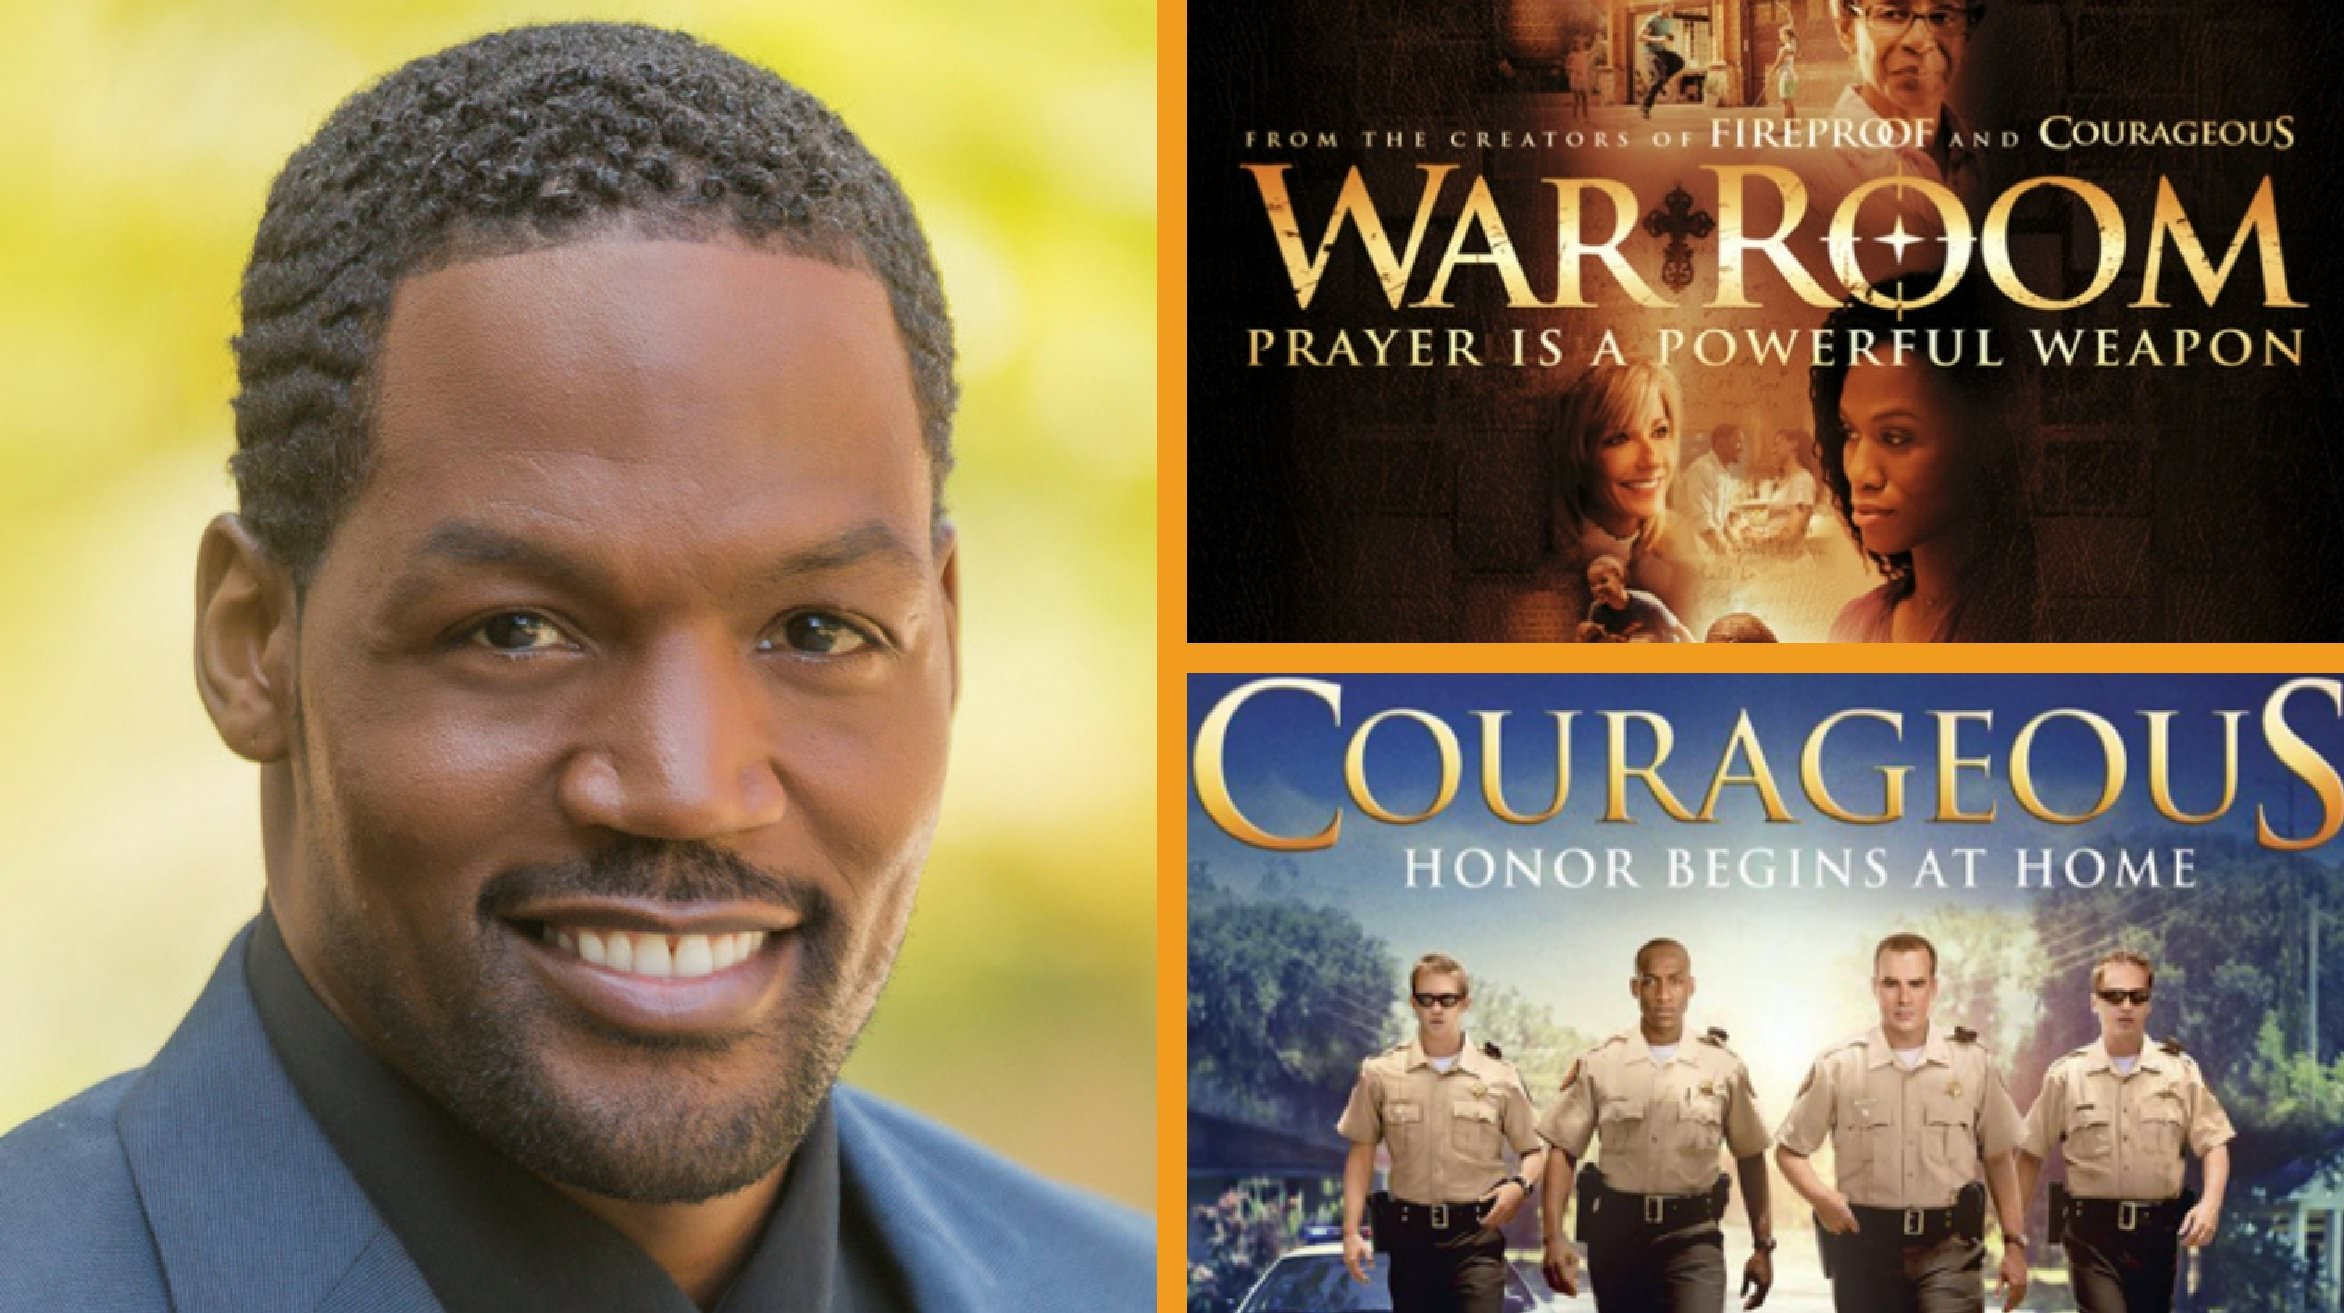 RMlogo Ep. 89 Interview with T. C. Stallings, actor in Courageous and War Room